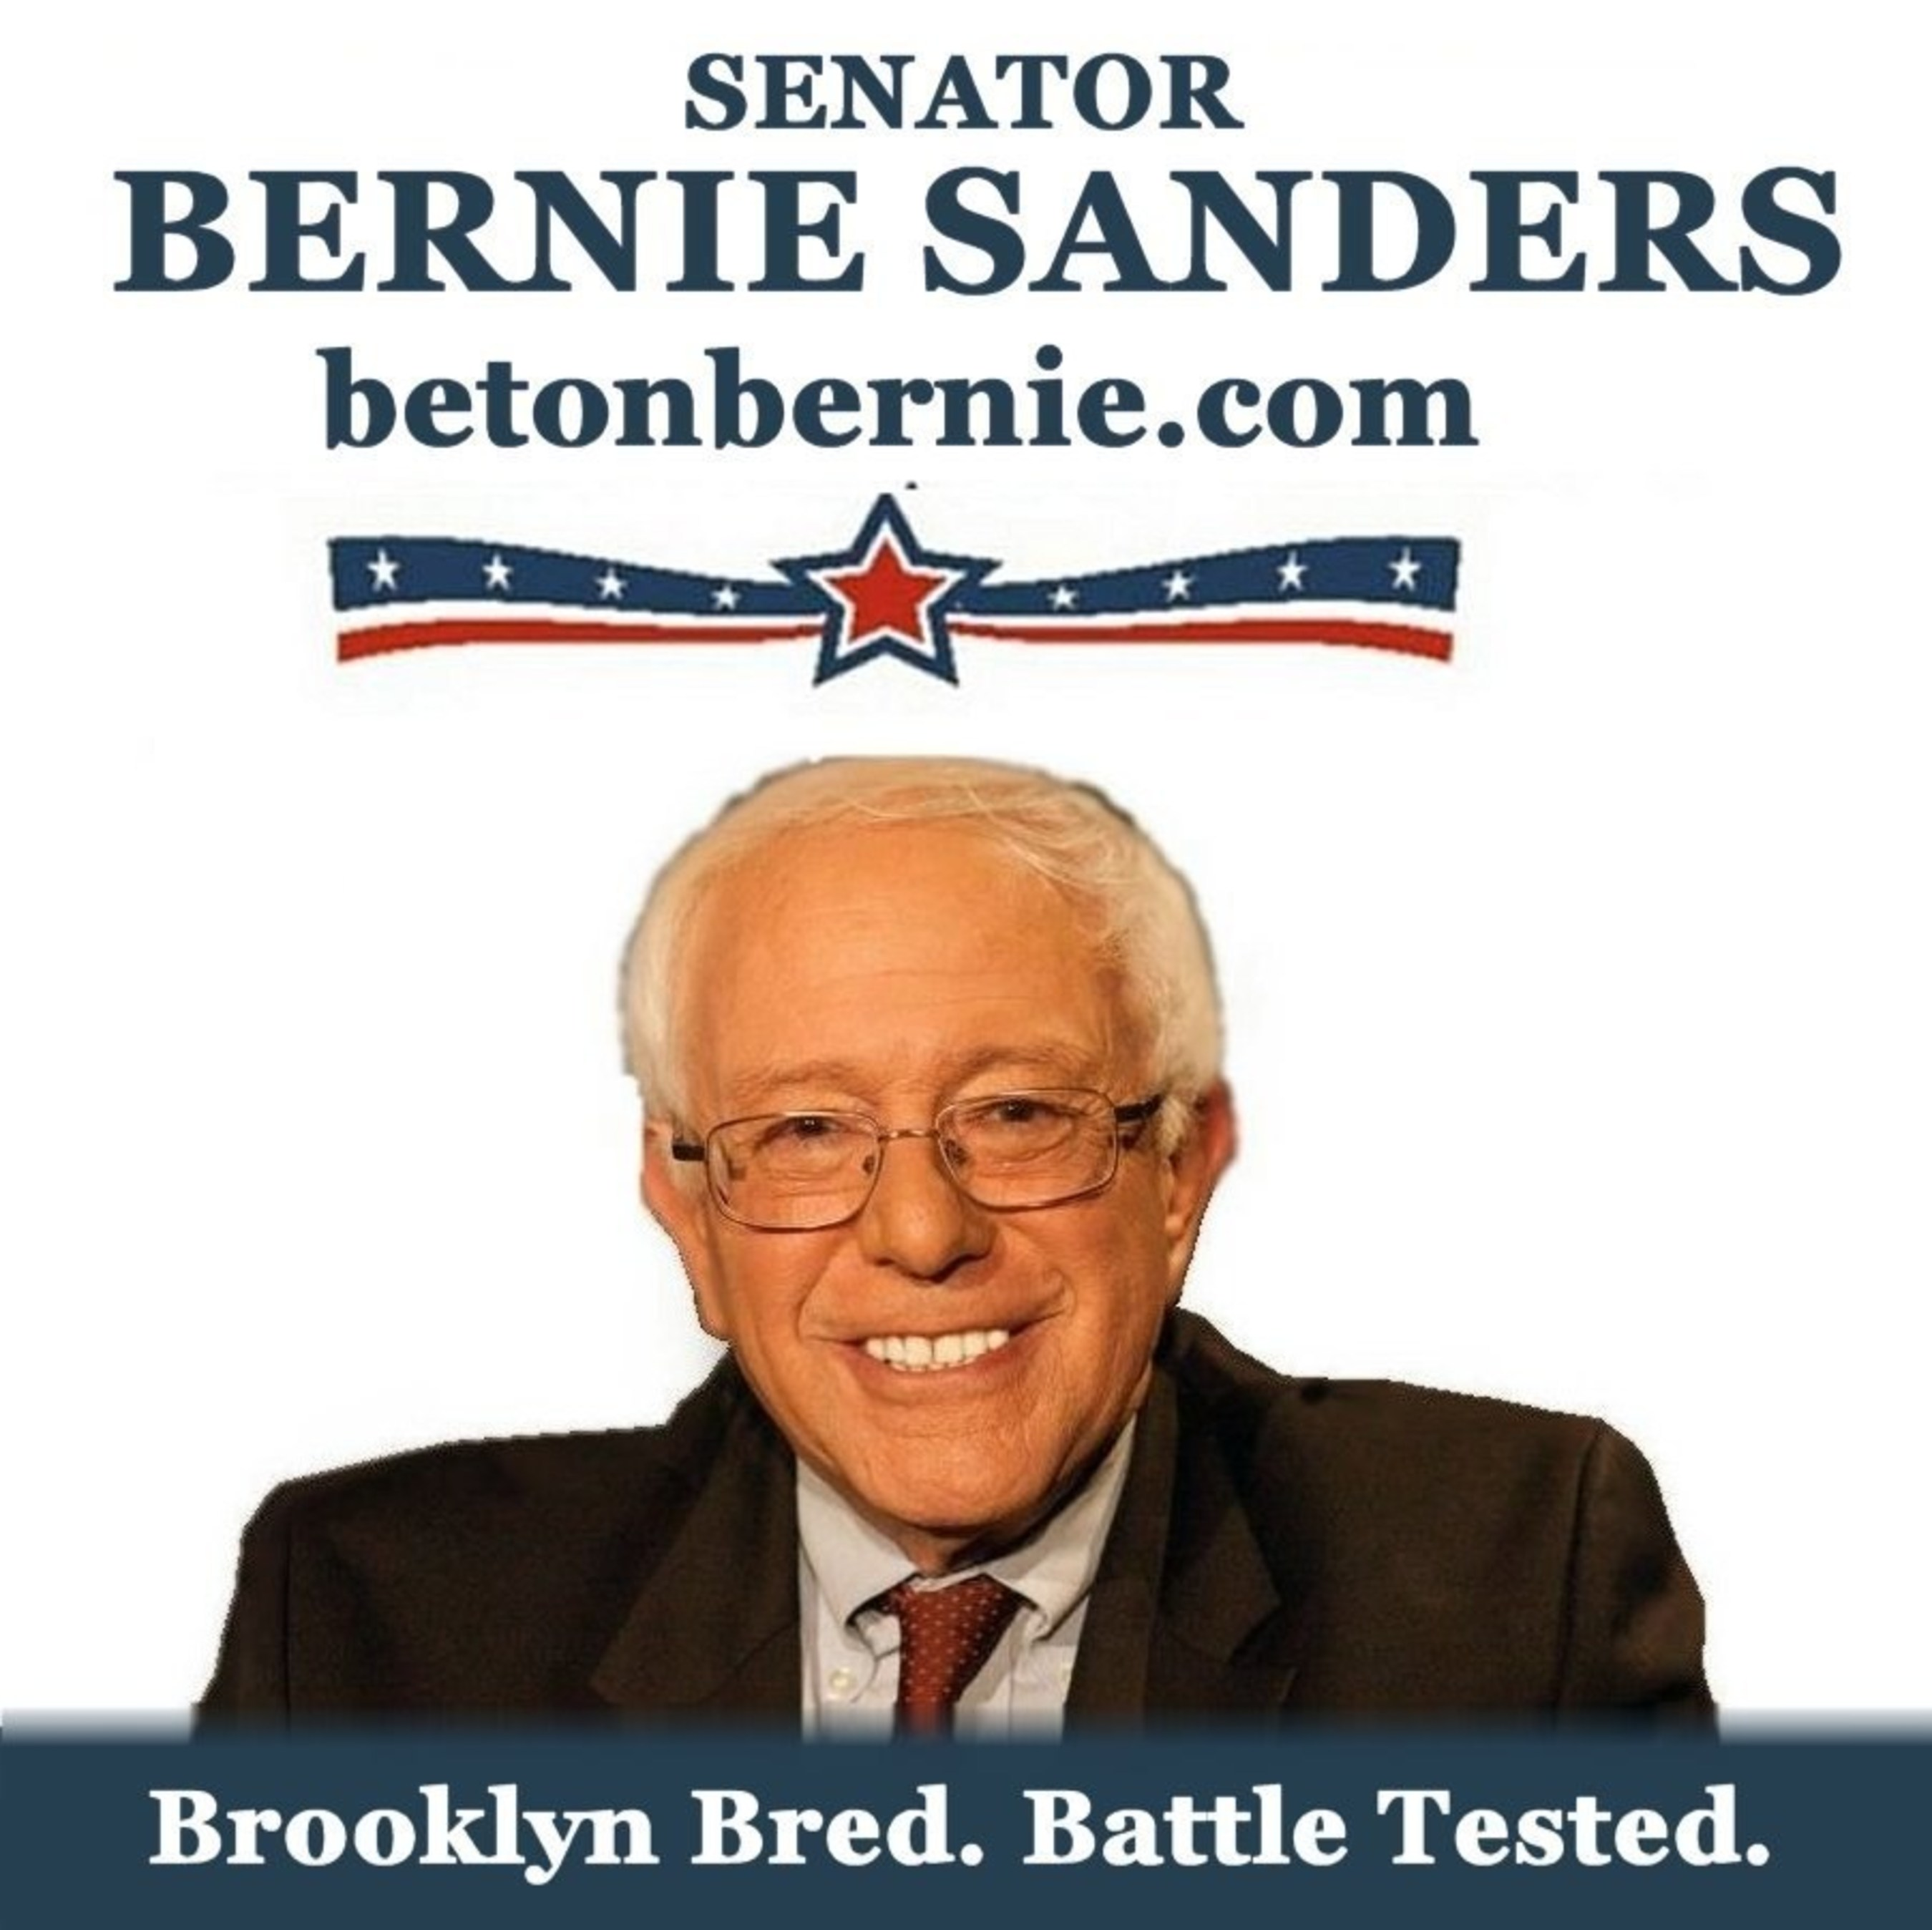 BETONBERNIE.COM: Sen. Bernie Sanders for president. Born & bred in Brooklyn. 30+ years in Congress, not a flaw. The world is ours. GO VOTE!